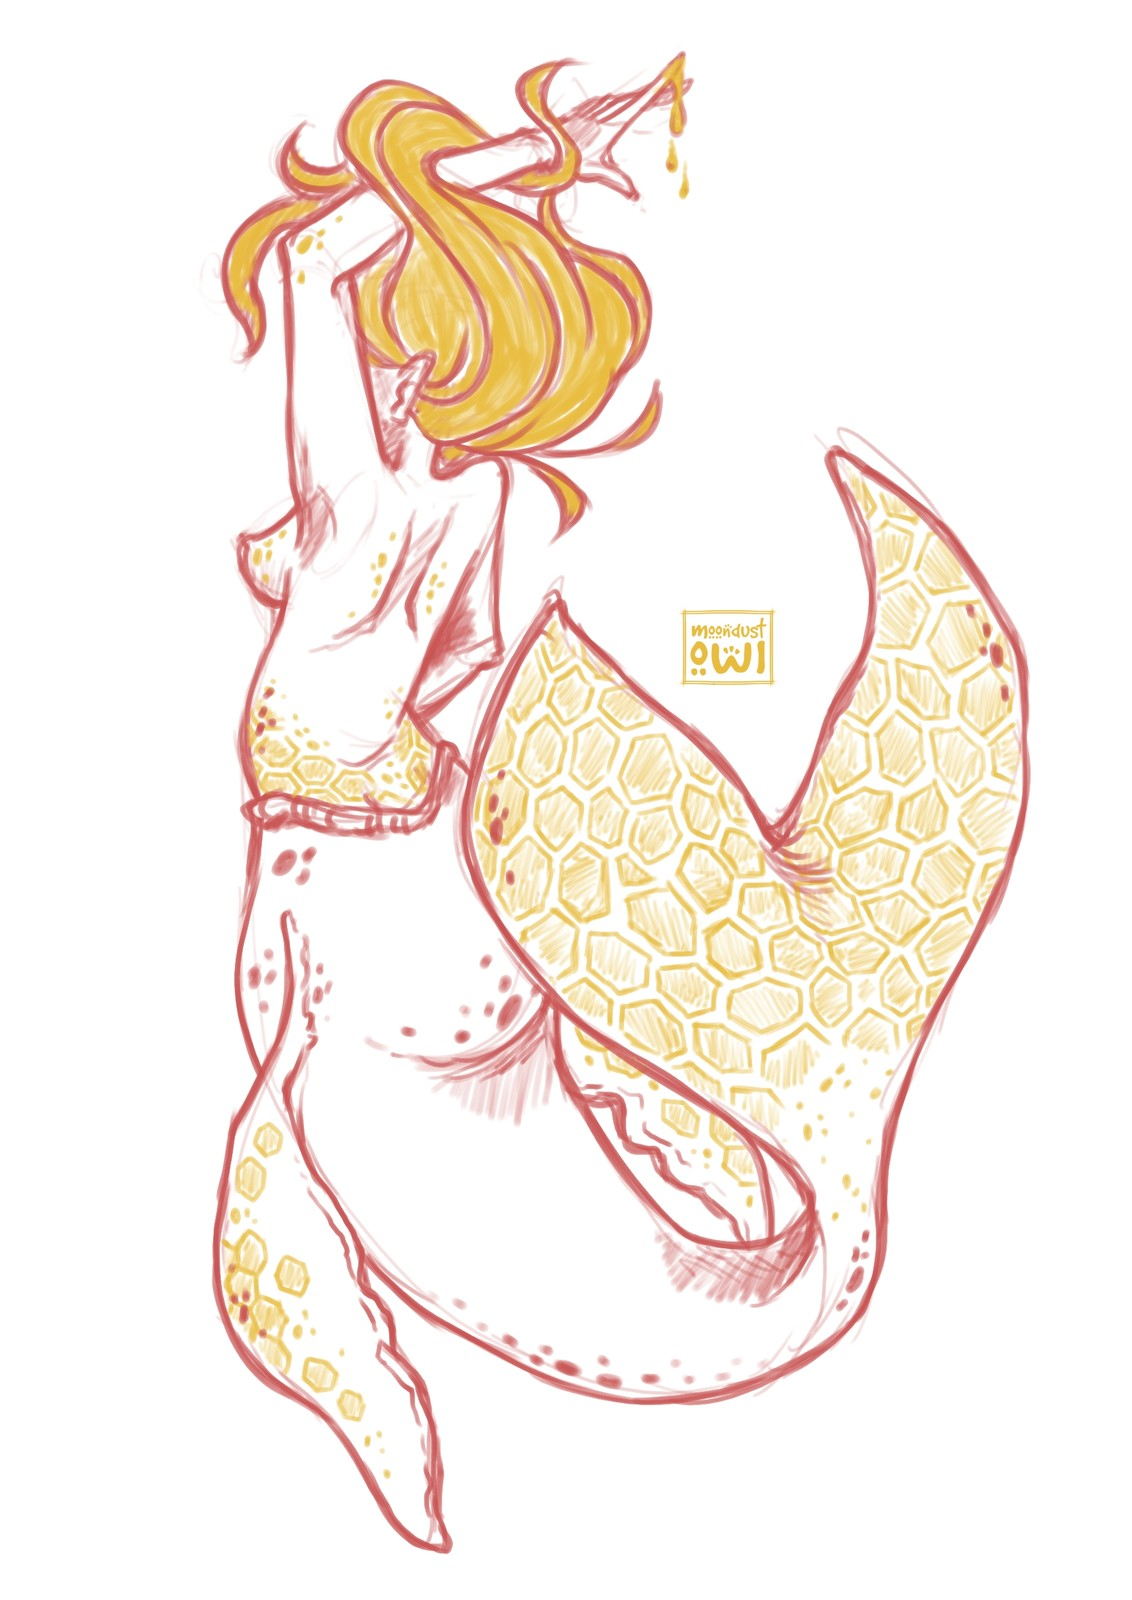 Honey-Whale mermaid